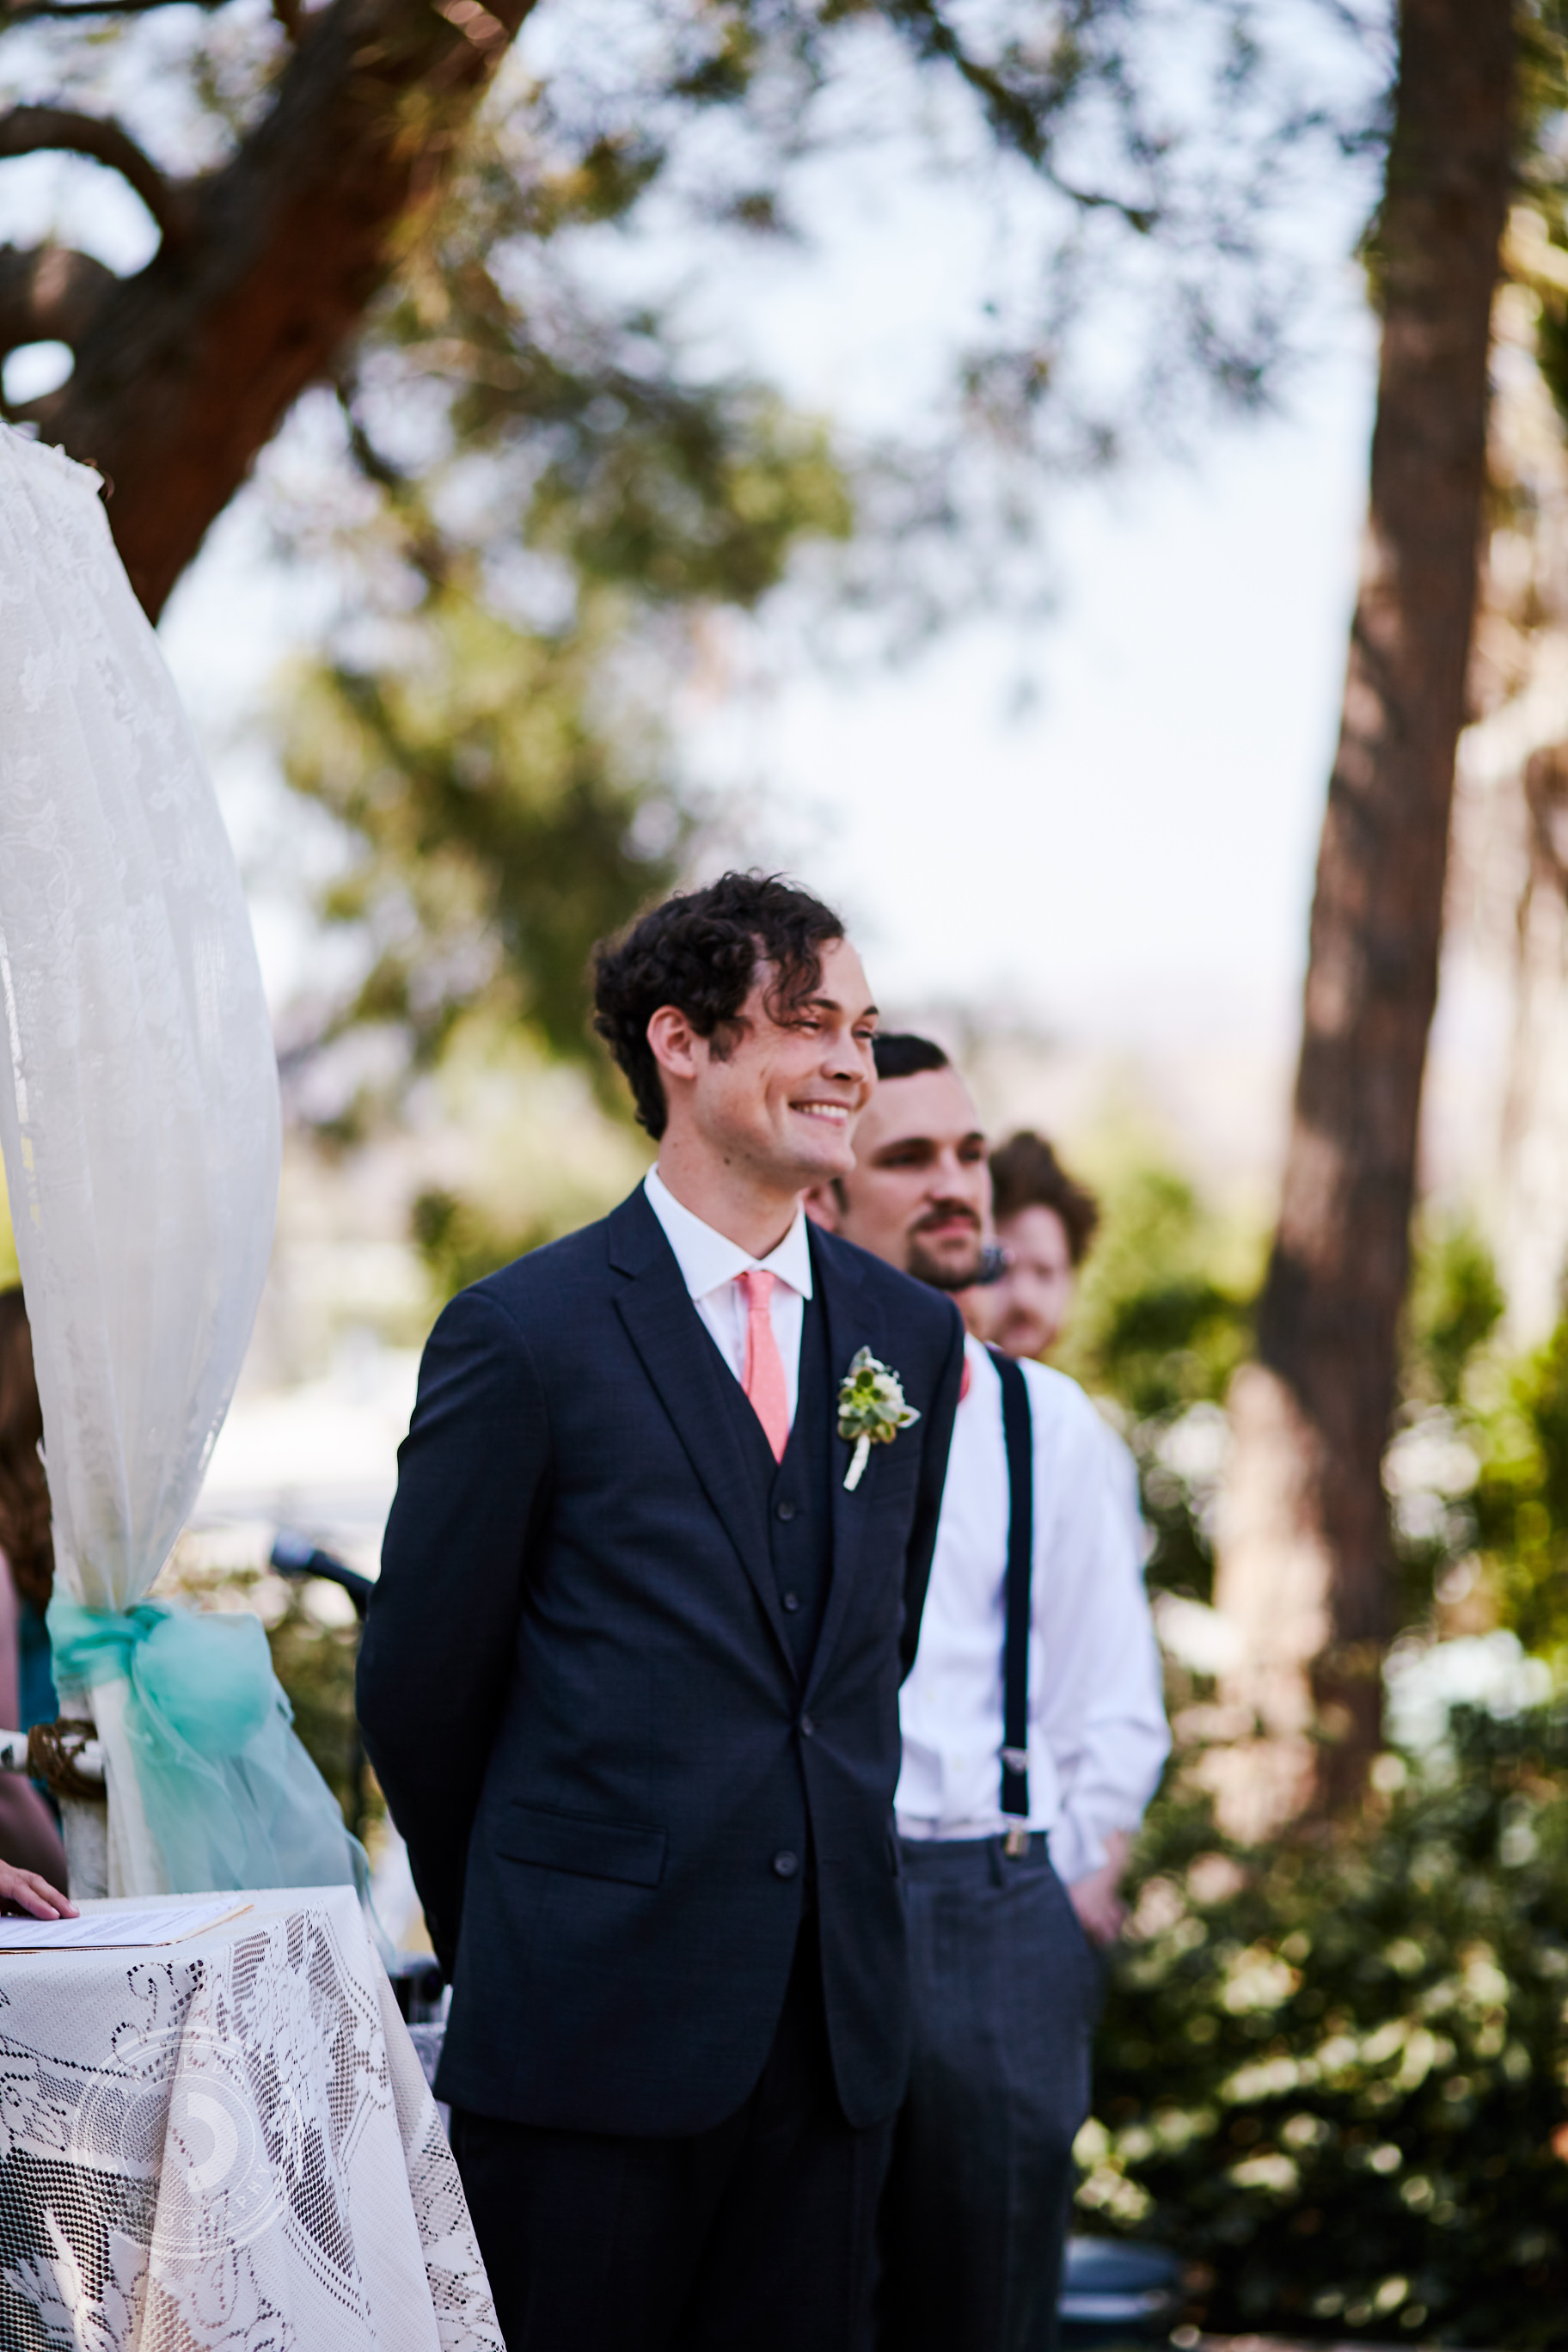 Daniel Doty Photography Erin Colin SoCal Wedding Photographer Strathearn 119.jpg